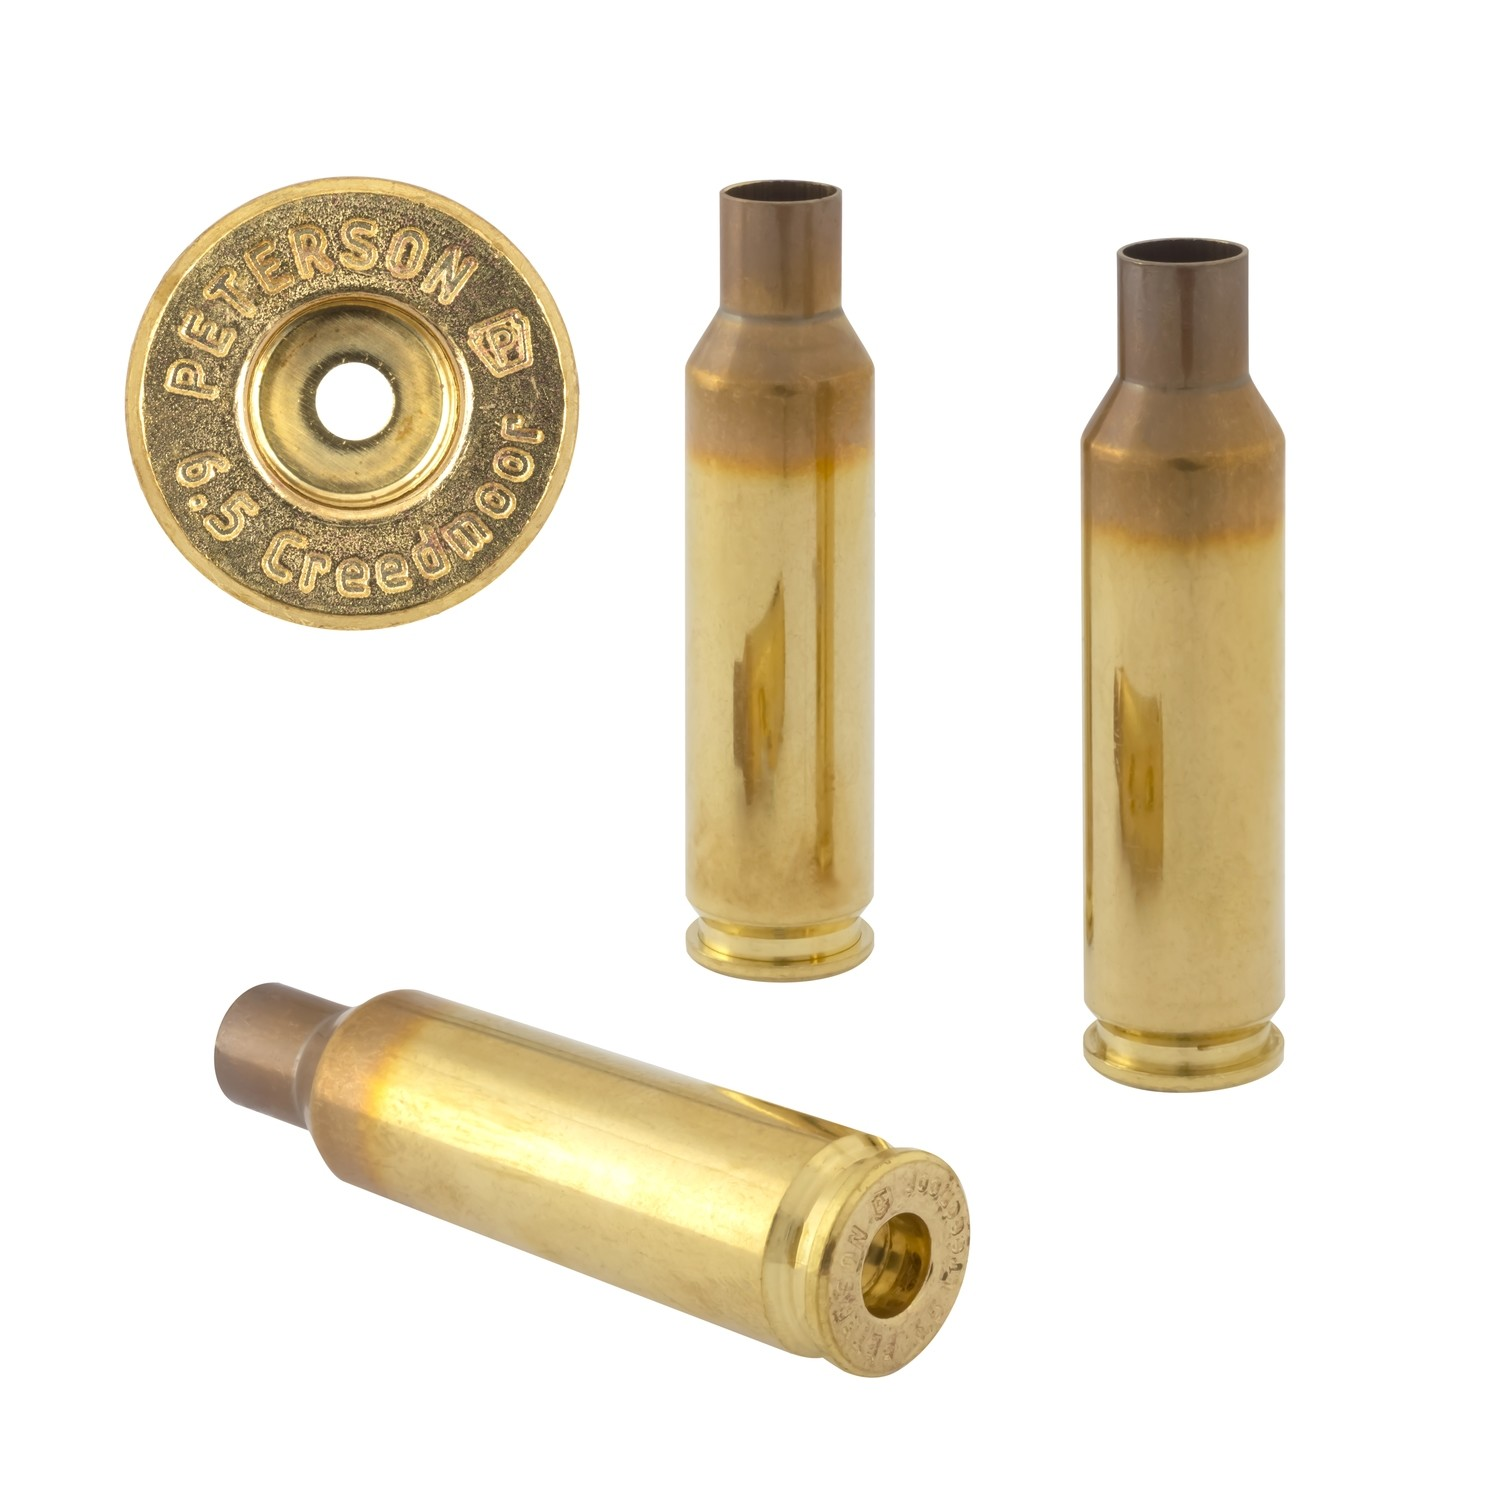 Peterson 6.5 Creedmoor Fat Select - Box of 50 Brass Rifle Casings